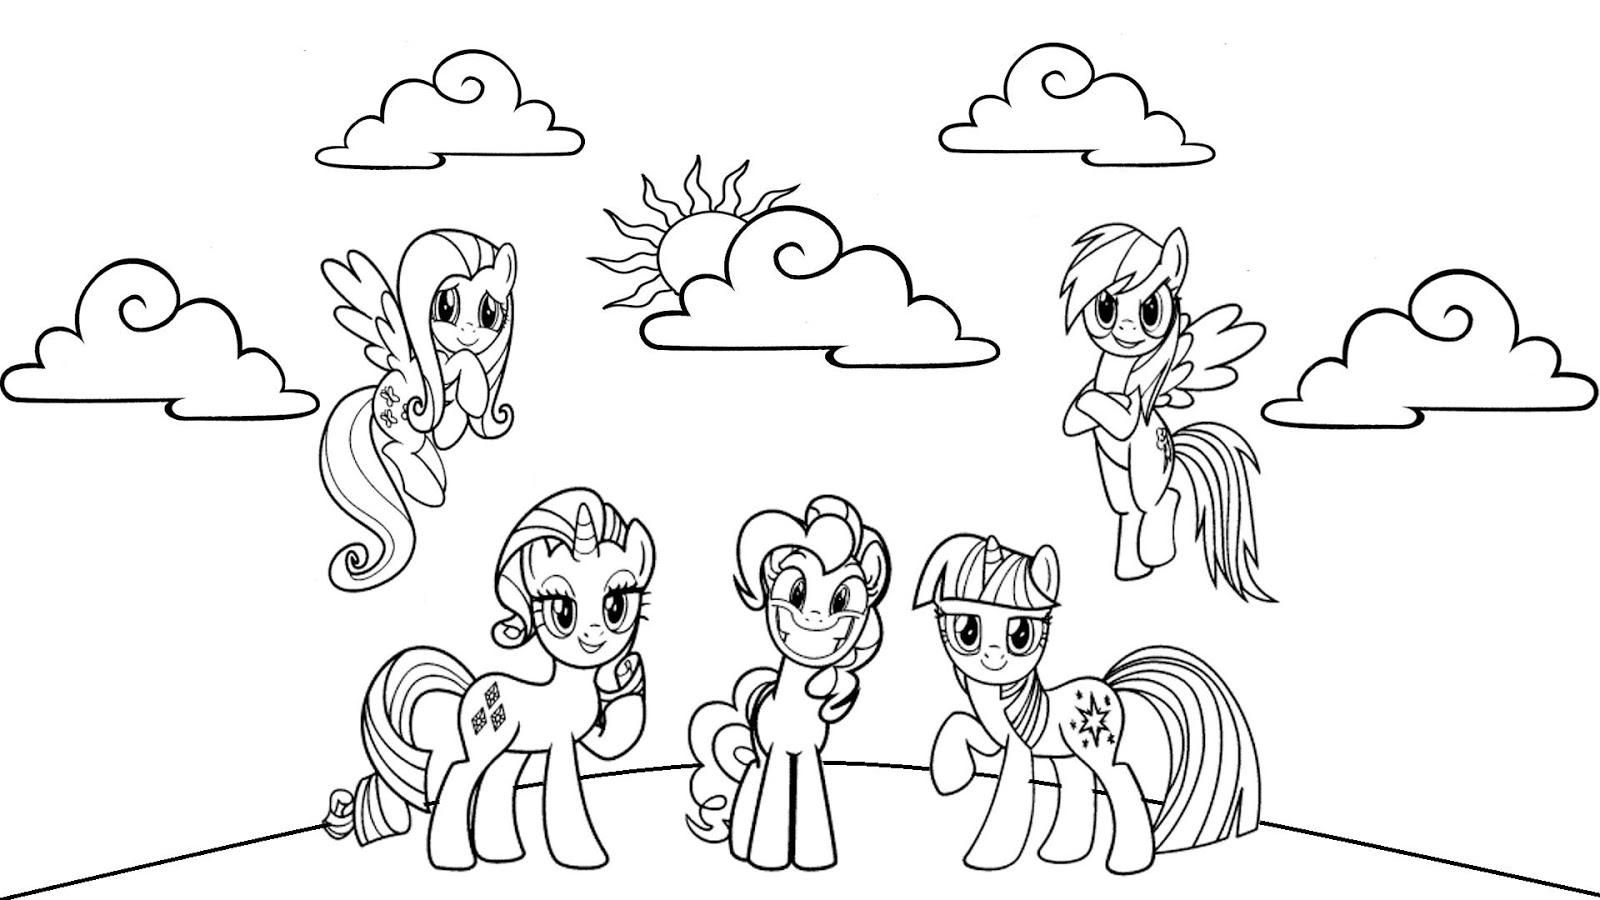 coloring pages of my little pony friendship is magic my little pony friendship is magic coloring pages at of little my coloring magic pony friendship pages is